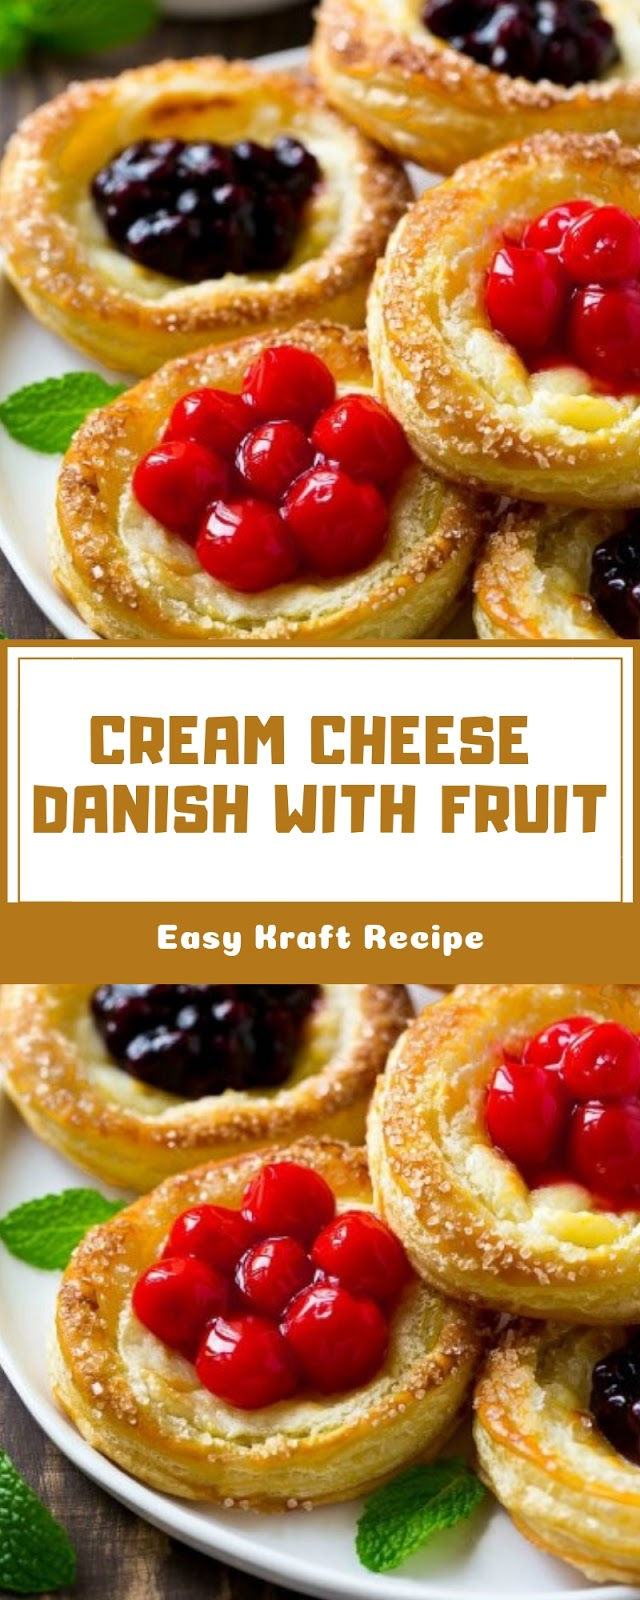 CREAM CHEESE DANISH WITH FRUIT